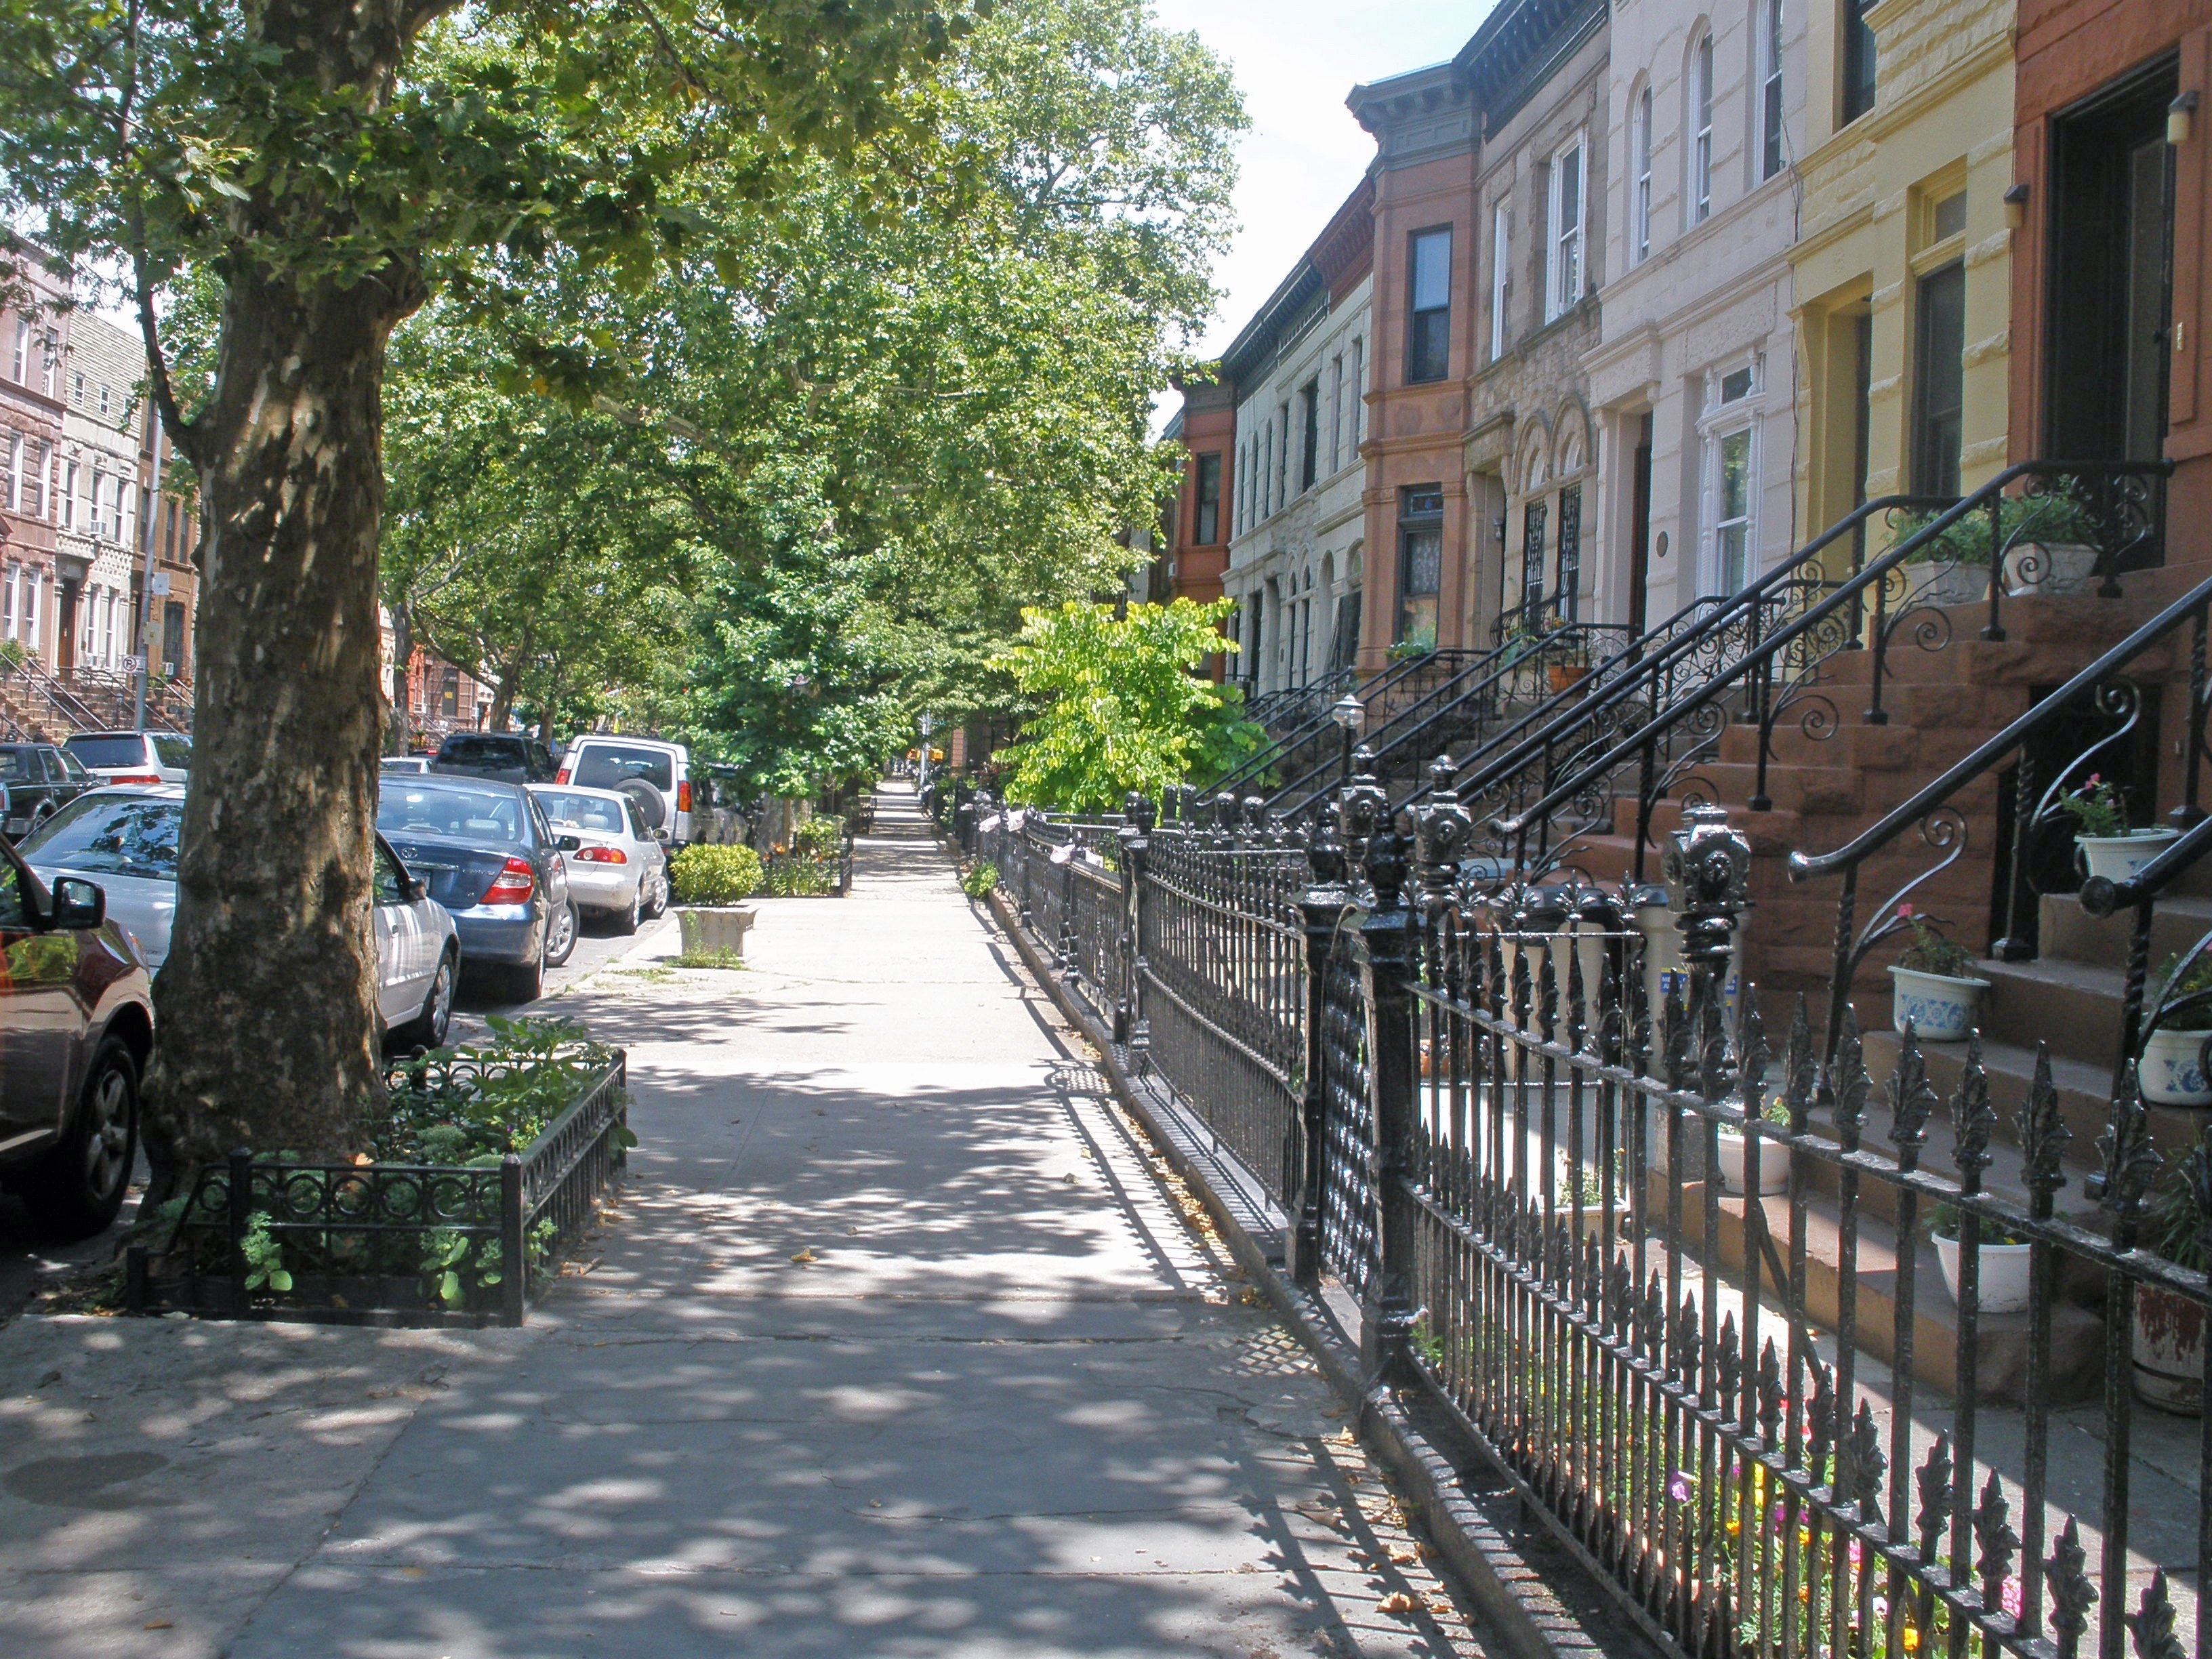 1 Bedroom Apartments For Rent In New Bedford Ma Bed Stuy 1 Bedroom Apartment For Rent Brooklyn